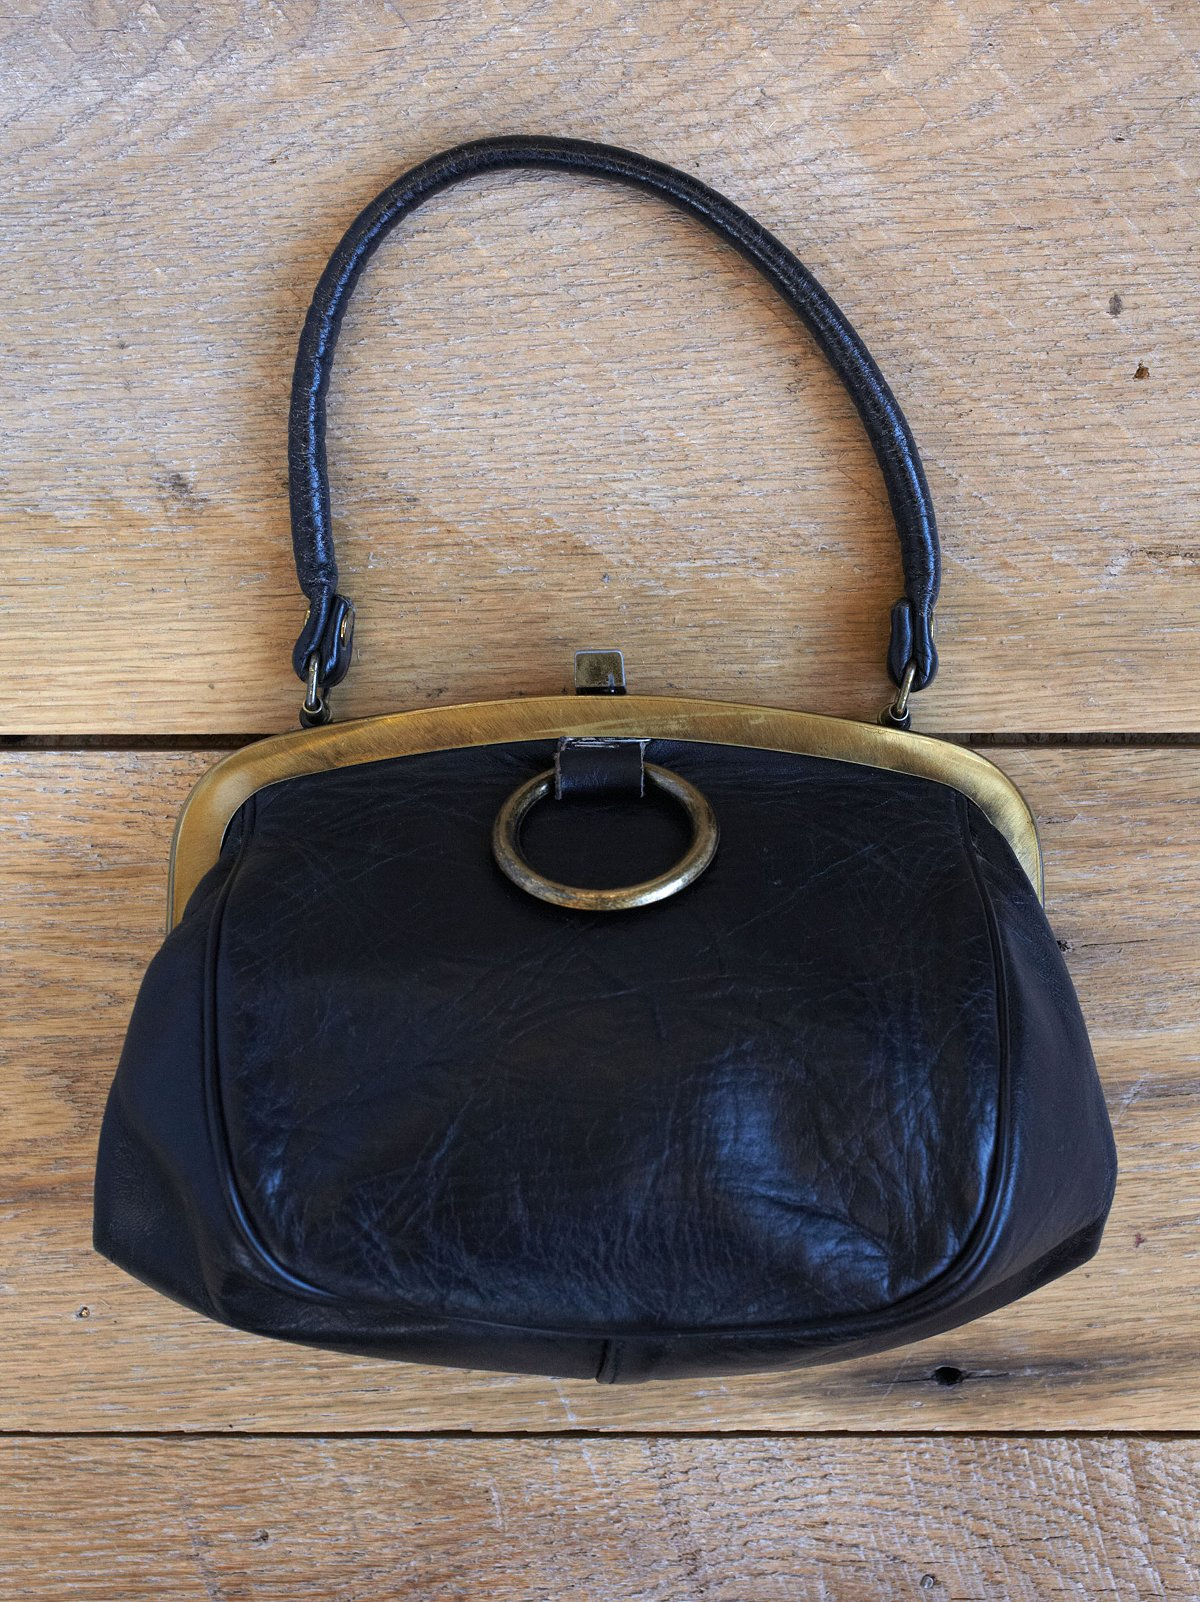 Vintage 1970s Leather Bag